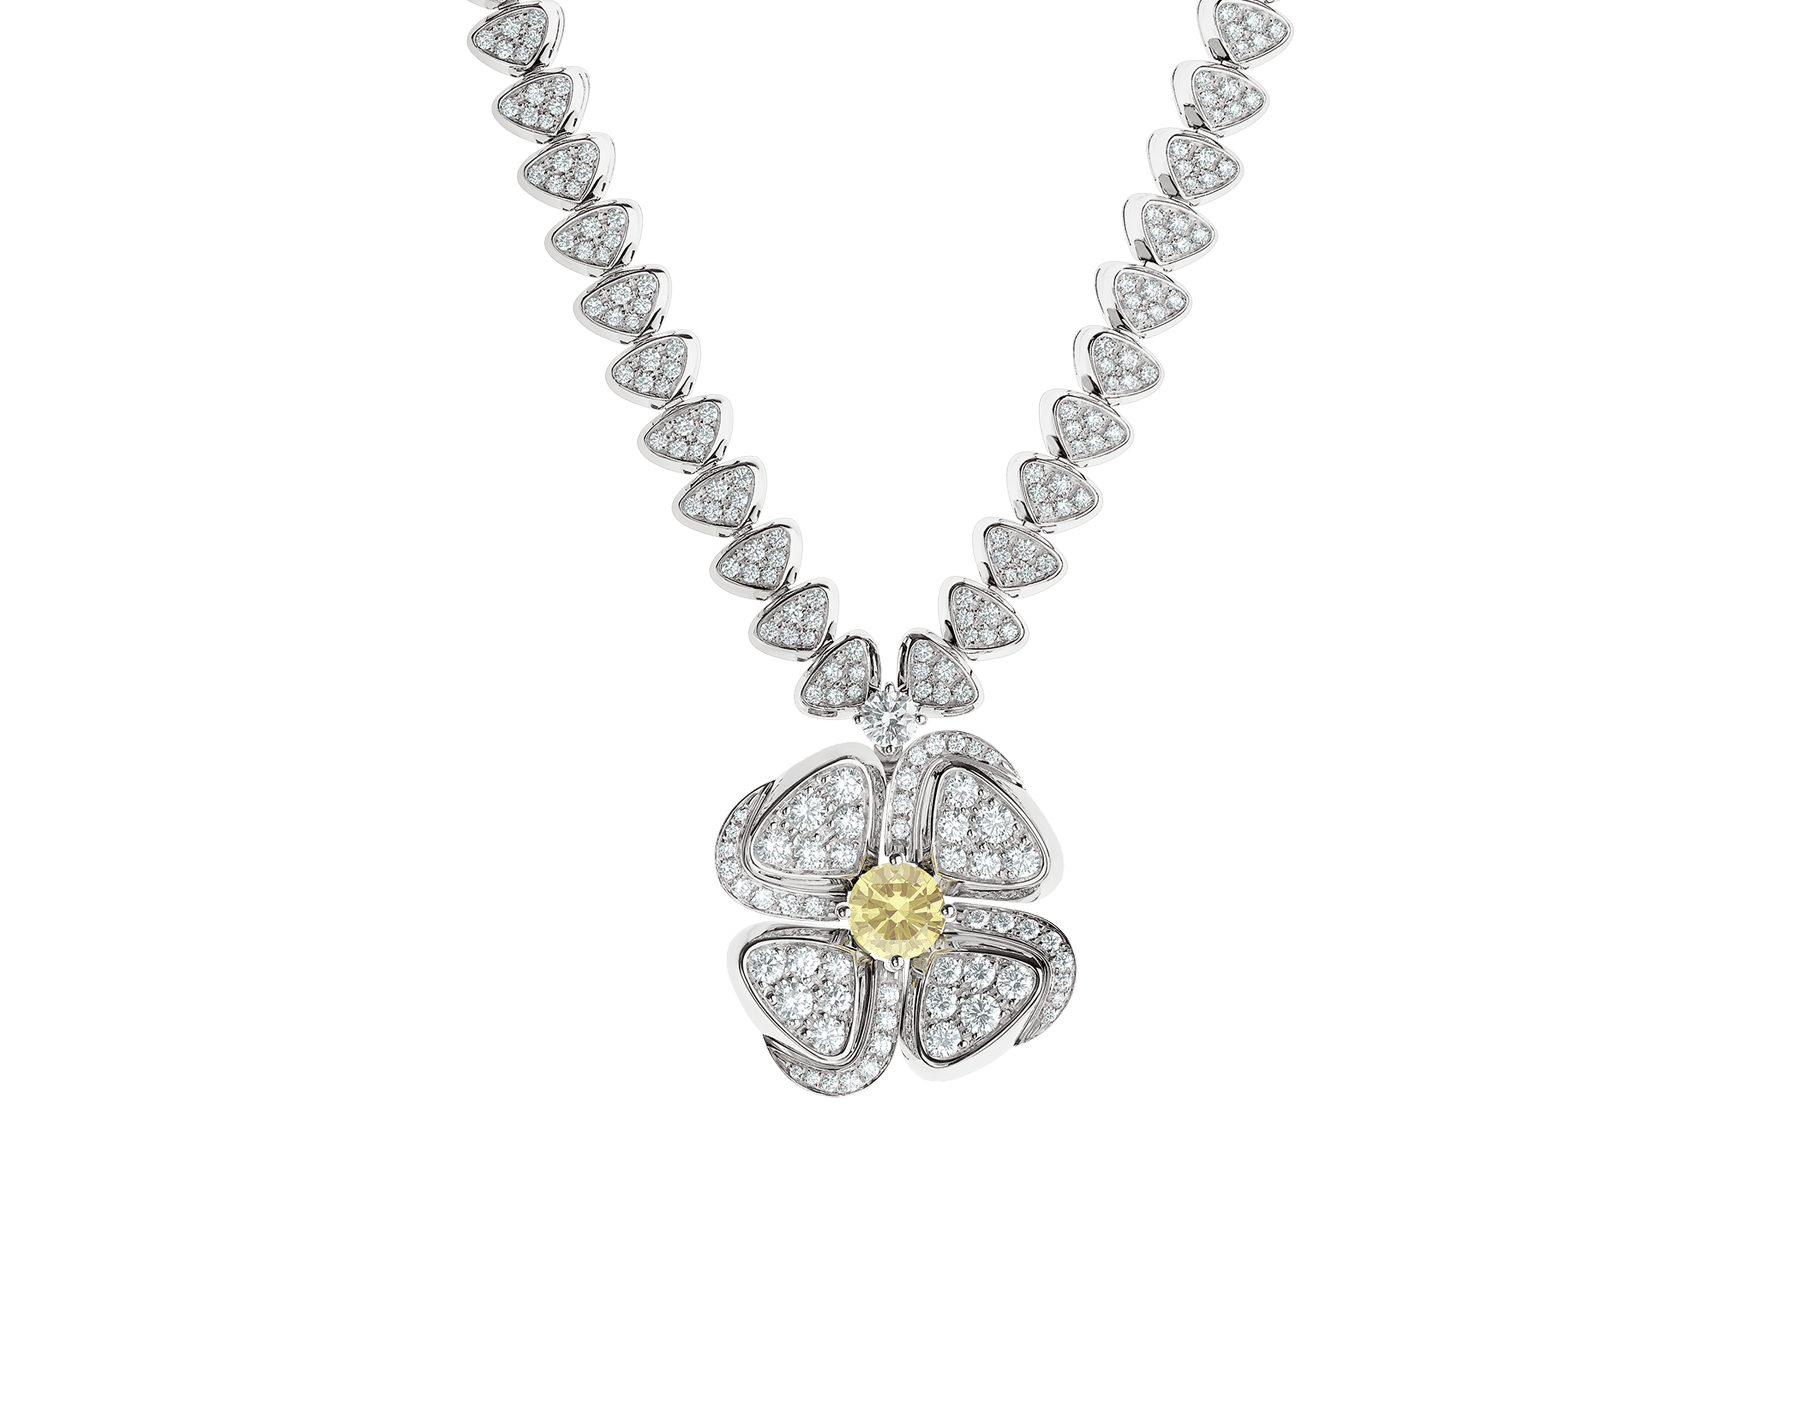 Fiorever 18 kt white gold necklace set with one central yellow diamond (0.50 ct) and pavé diamonds 357797 image 1